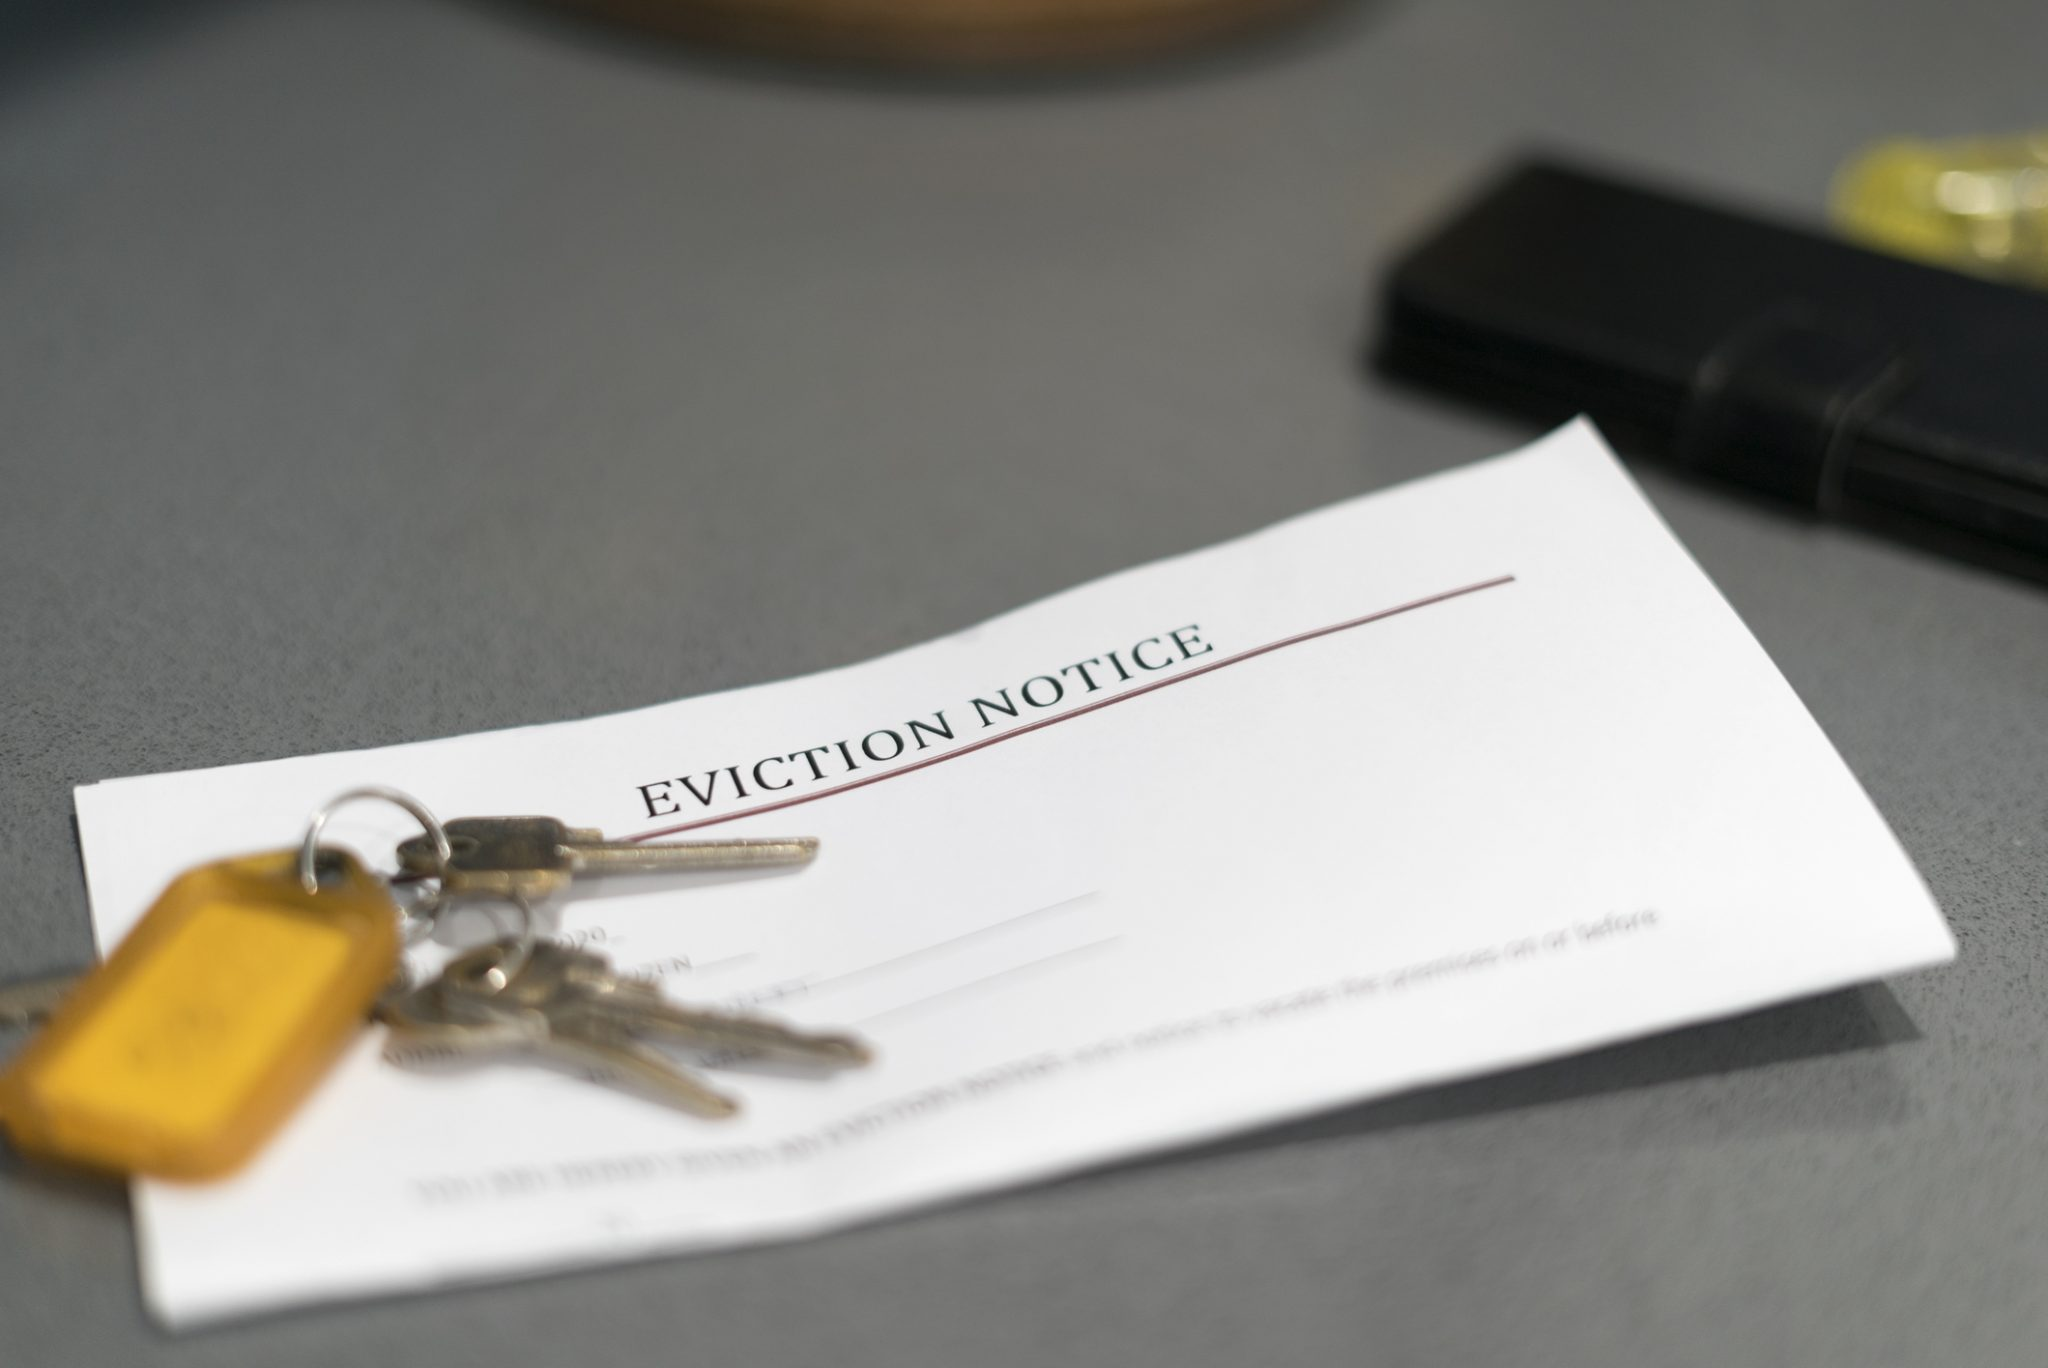 Landlords: Less than two weeks until eviction notice period shortens